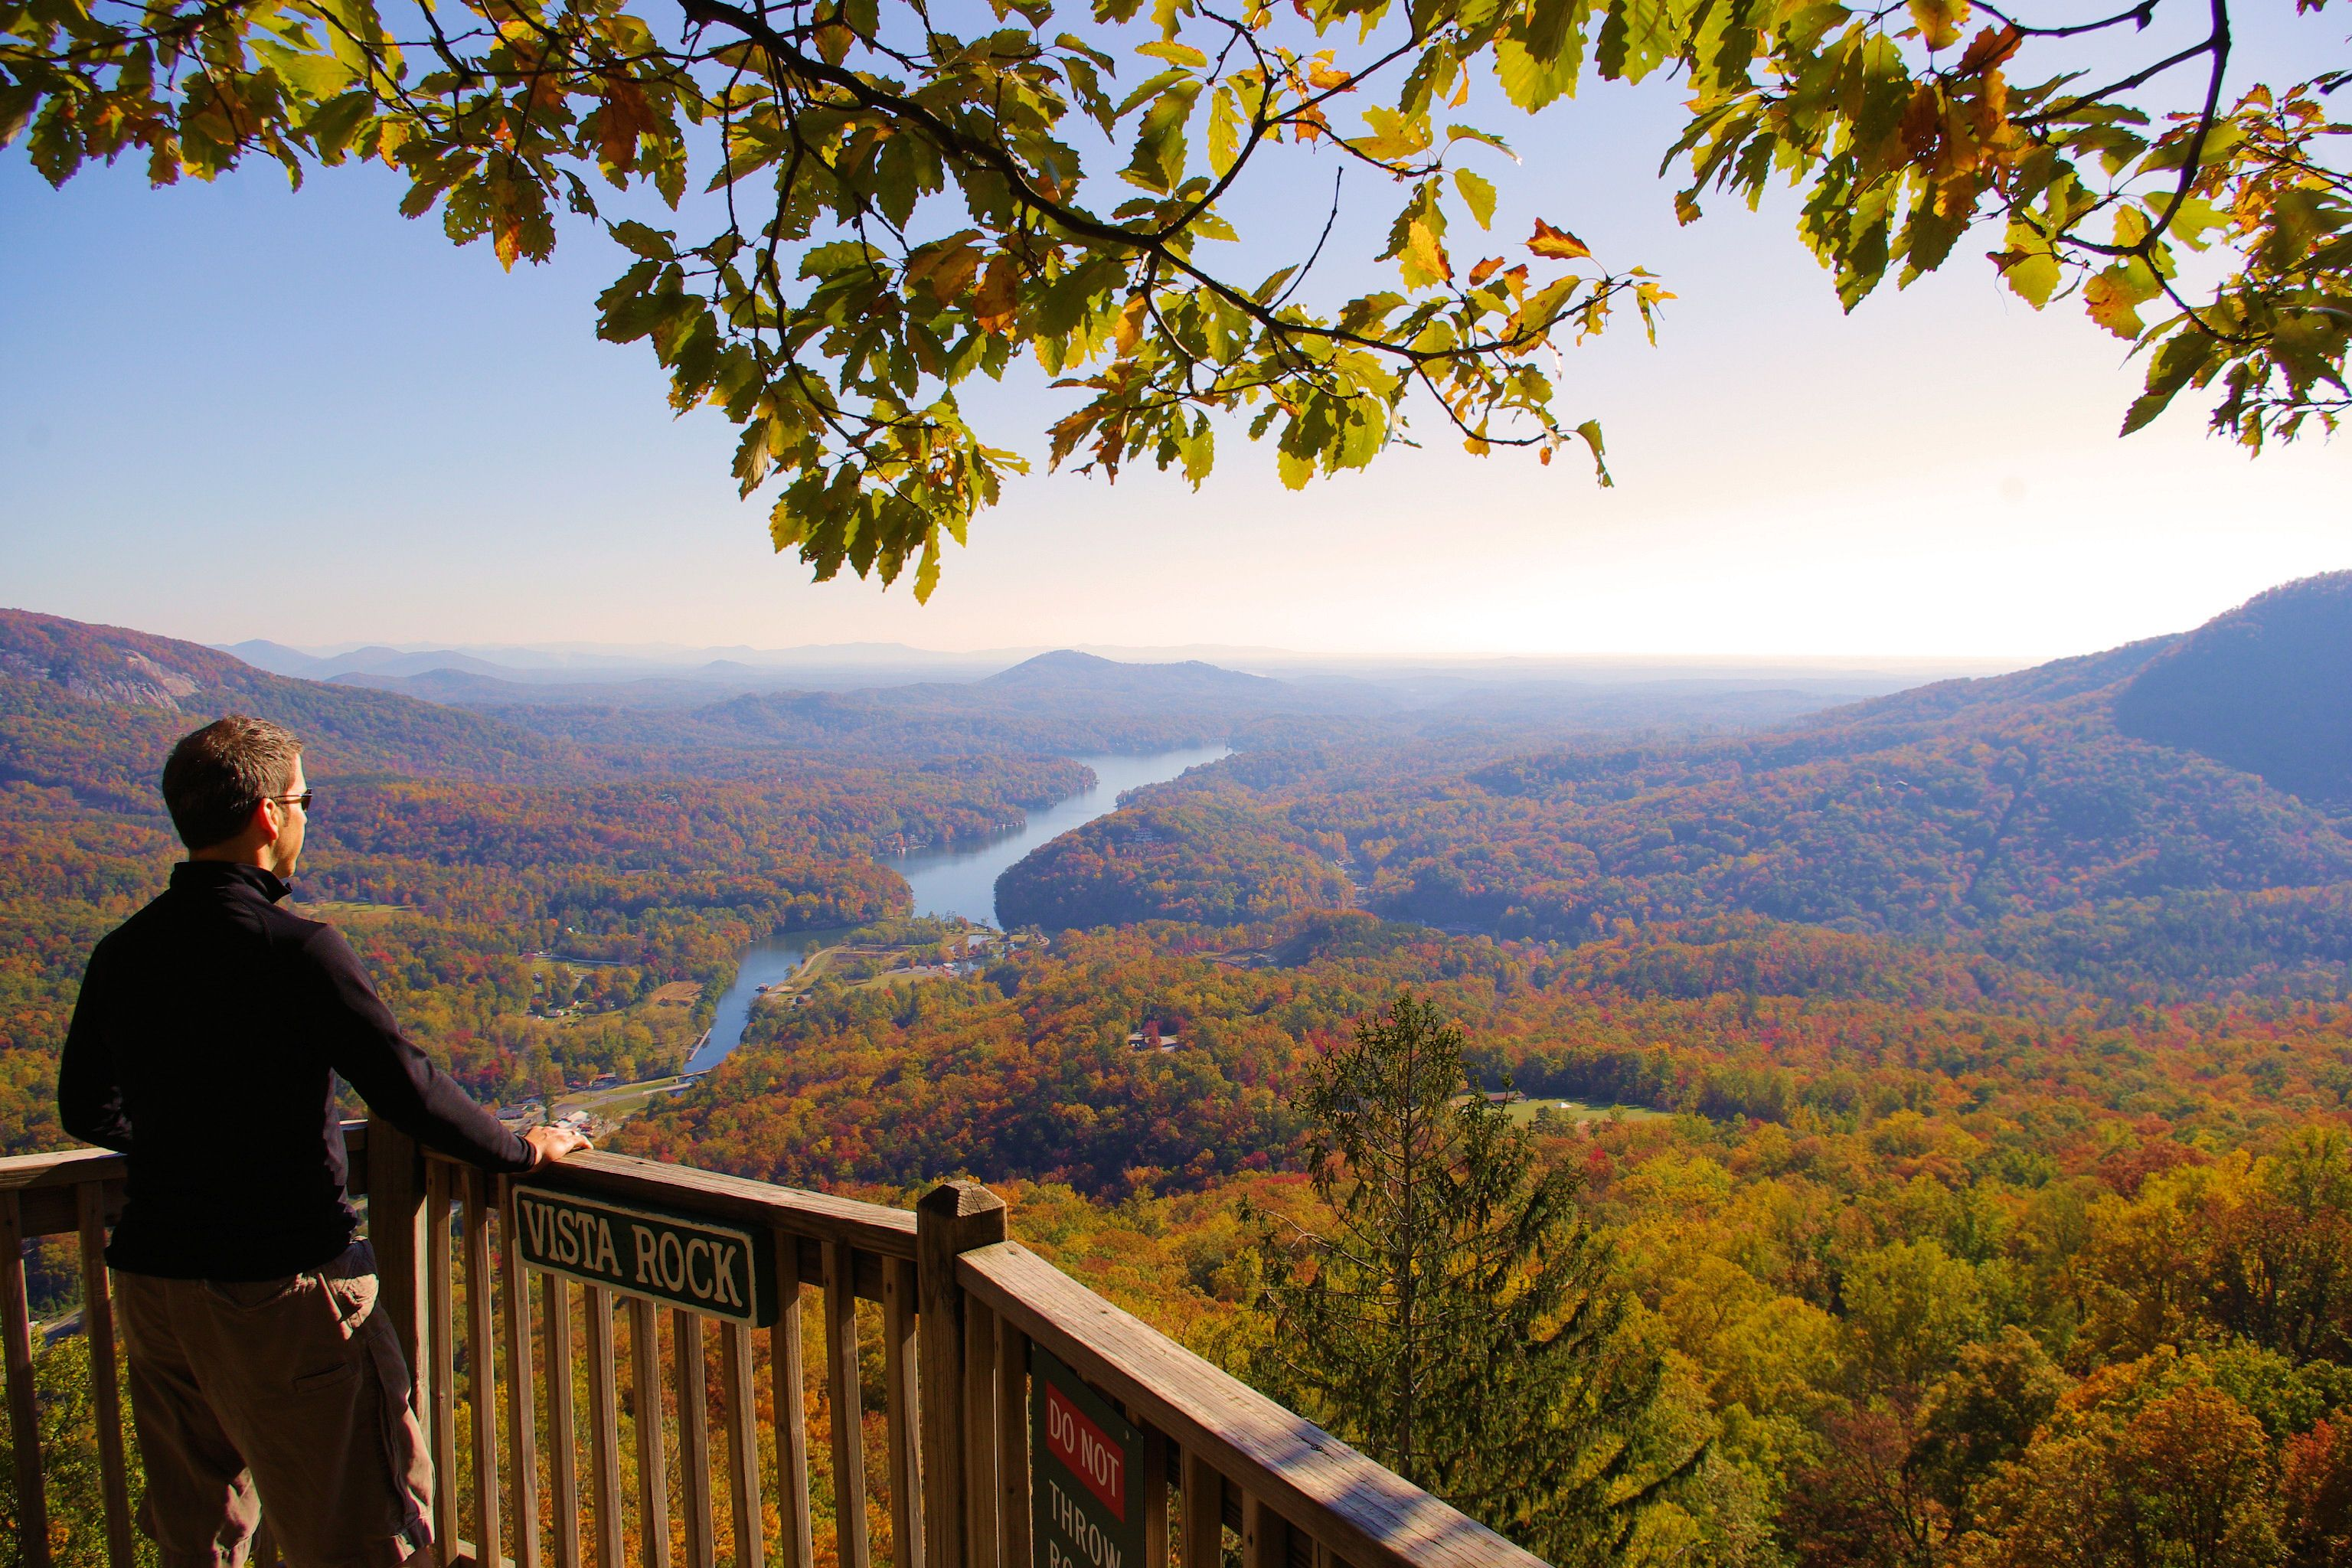 Come check out some of the best hikes in the Lake Lure area.